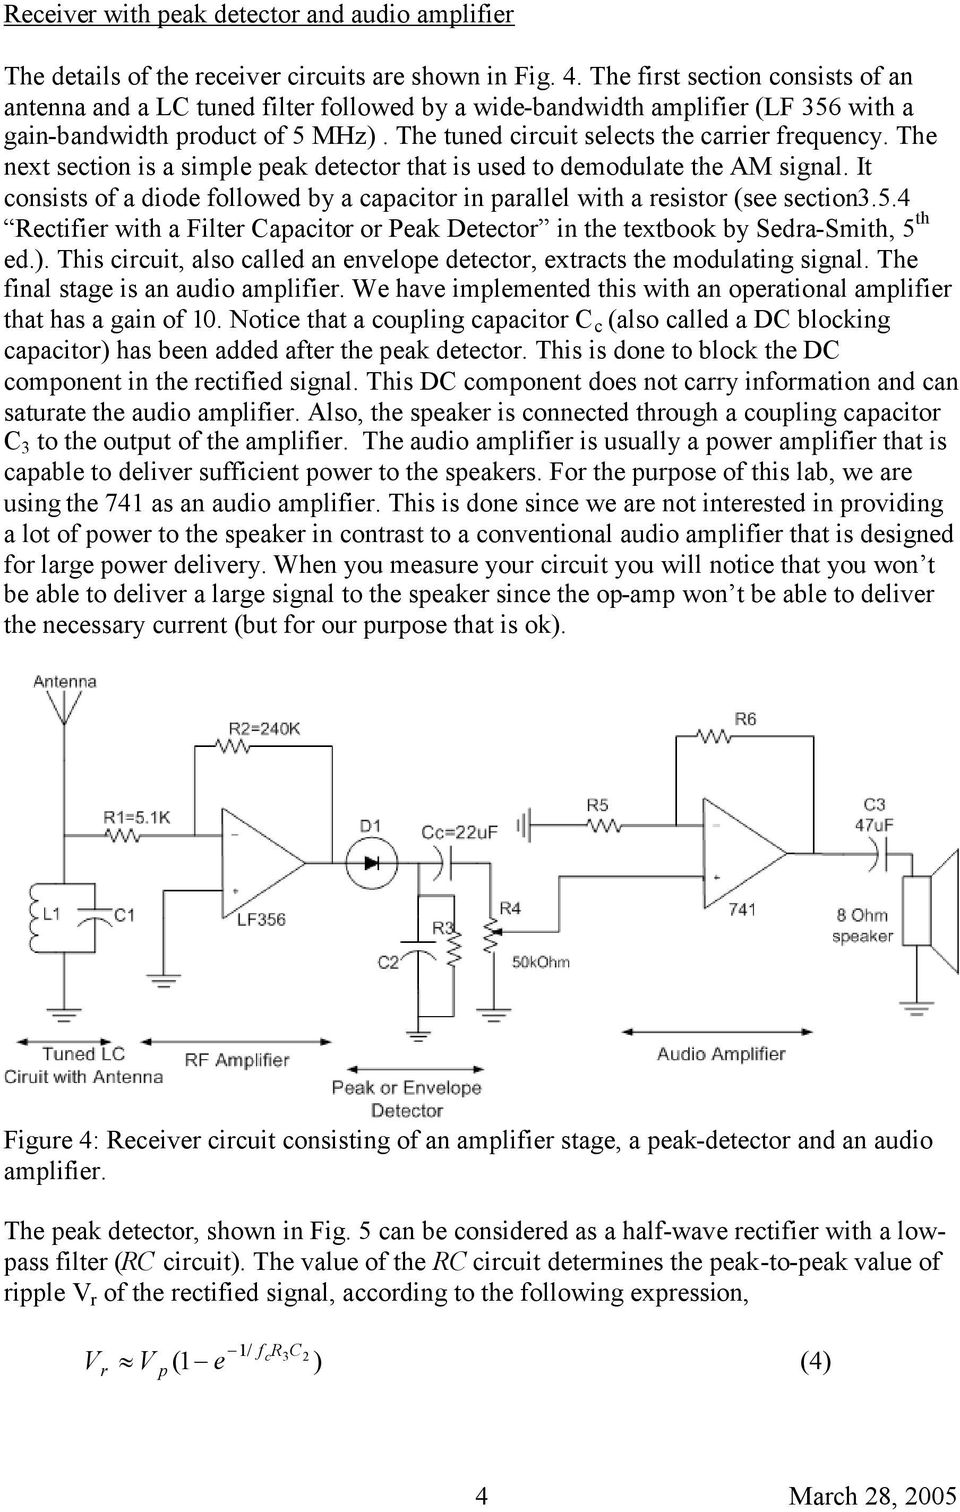 The next section is a simple peak detector that is used to demodulate the AM signal. It consists of a diode followed by a capacitor in parallel with a resistor (see section3.5.